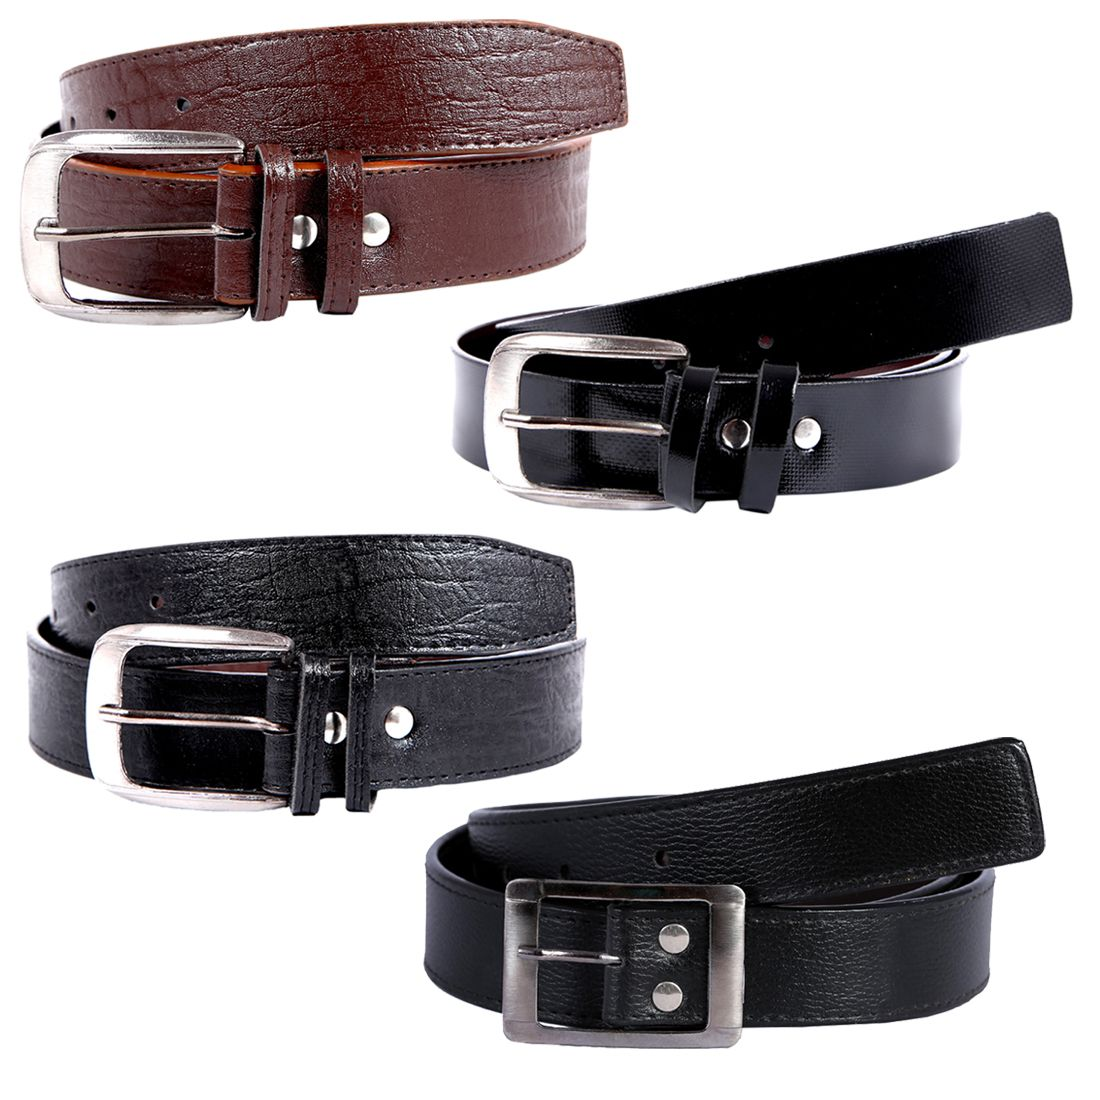 Hardy's Collection Multicolor Belts - Pack of 4